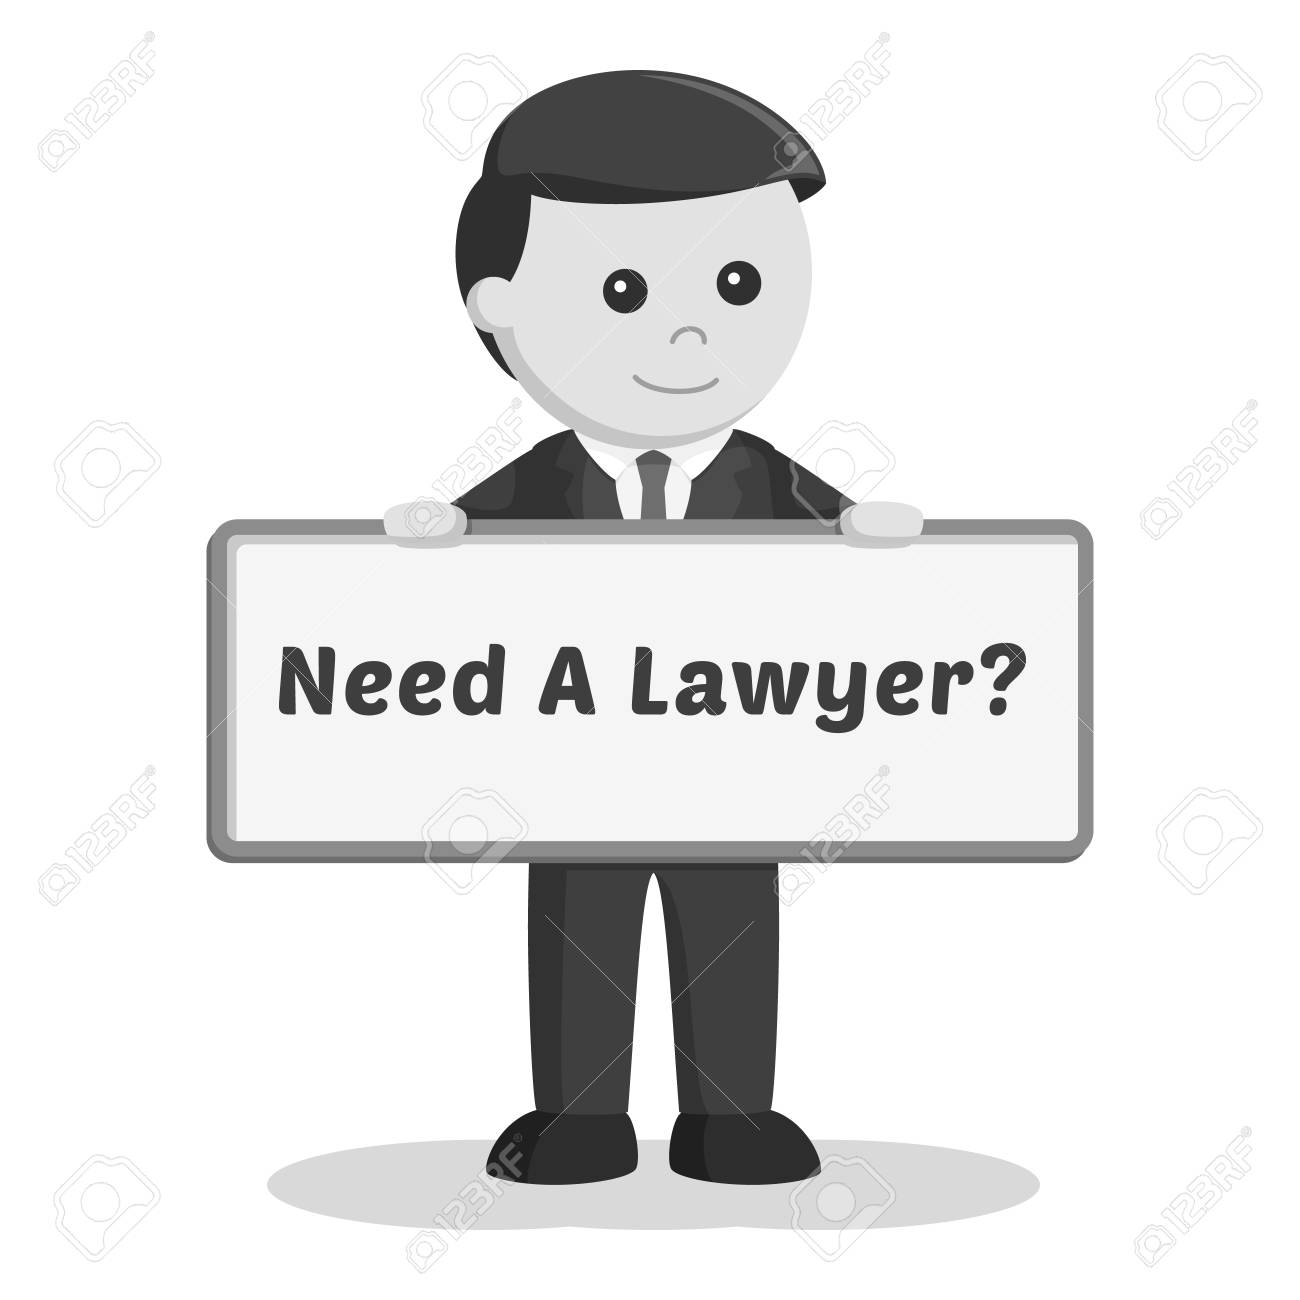 Female Lawyer With Legal Documents Black And White Style Royalty Free  Cliparts, Vectors, And Stock Illustration. Image 96245653.